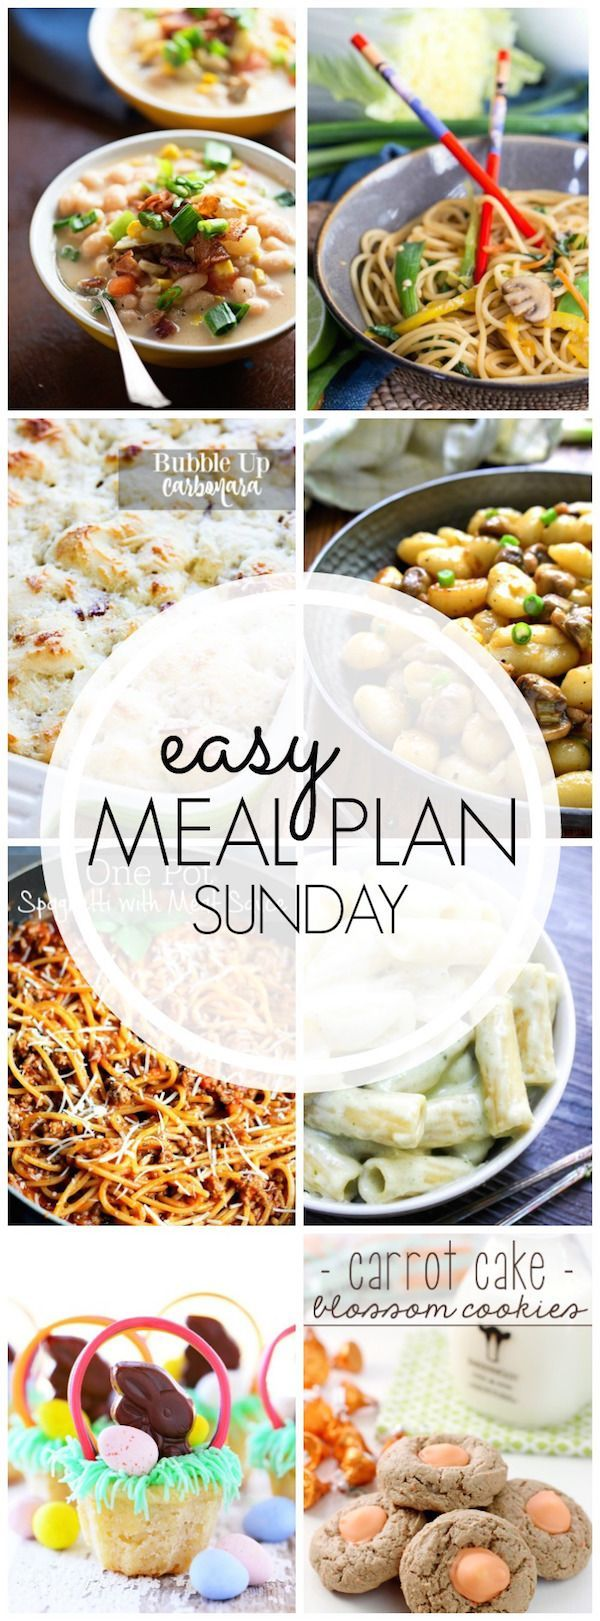 Easy Meal Plan #38 images